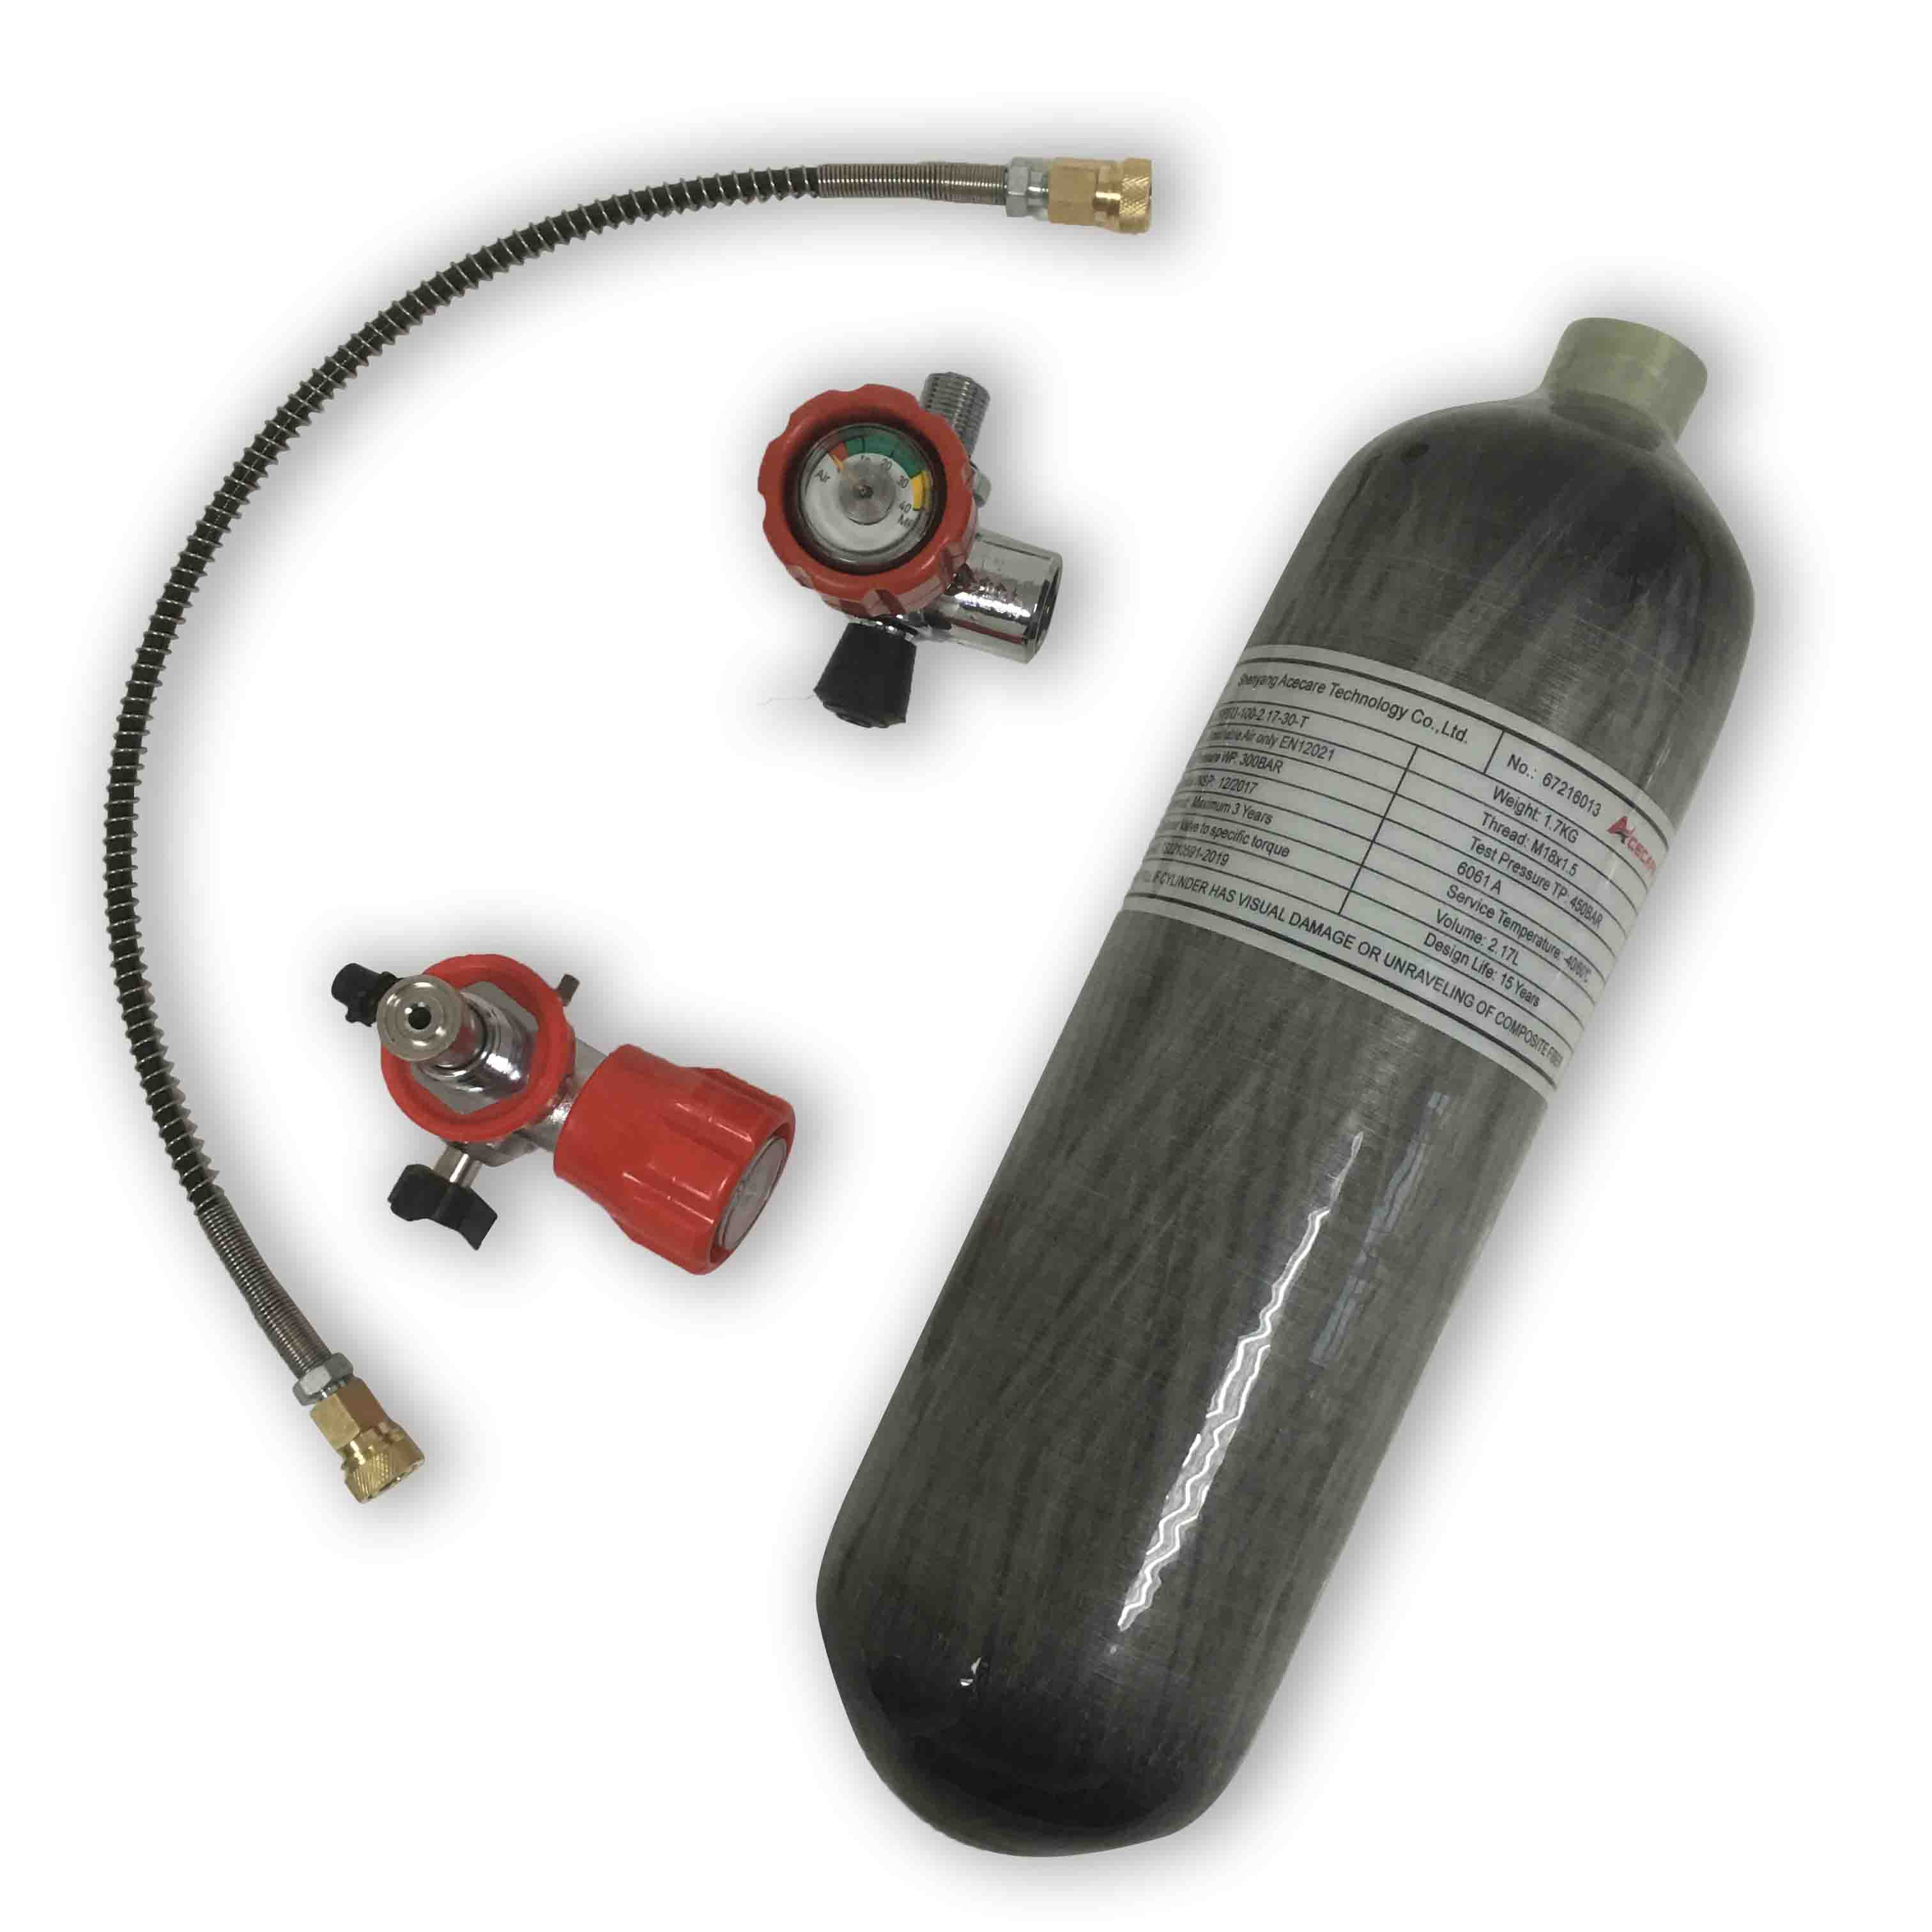 AC1217101 Acecare 2.17L HPA Compressed Air Tank Scuba Pcp 300Bar Airforce Condor Valve Rifle Air Rifle Cylinder Co2 Paintball